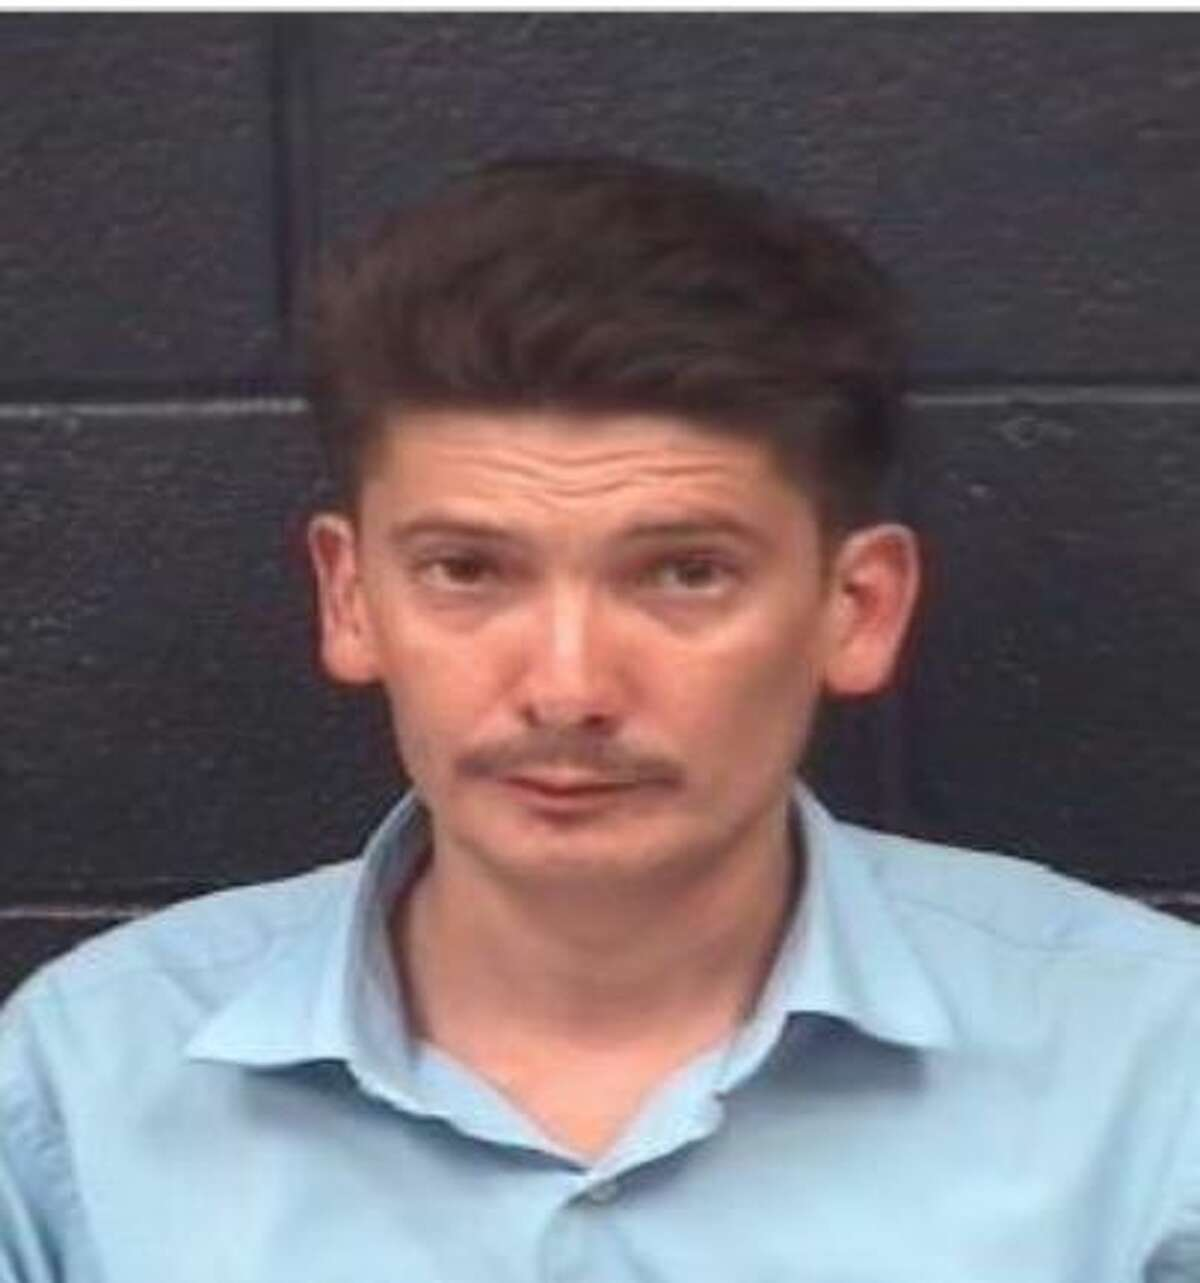 Edward Alexander Nolen was charged with driving while intoxicated.